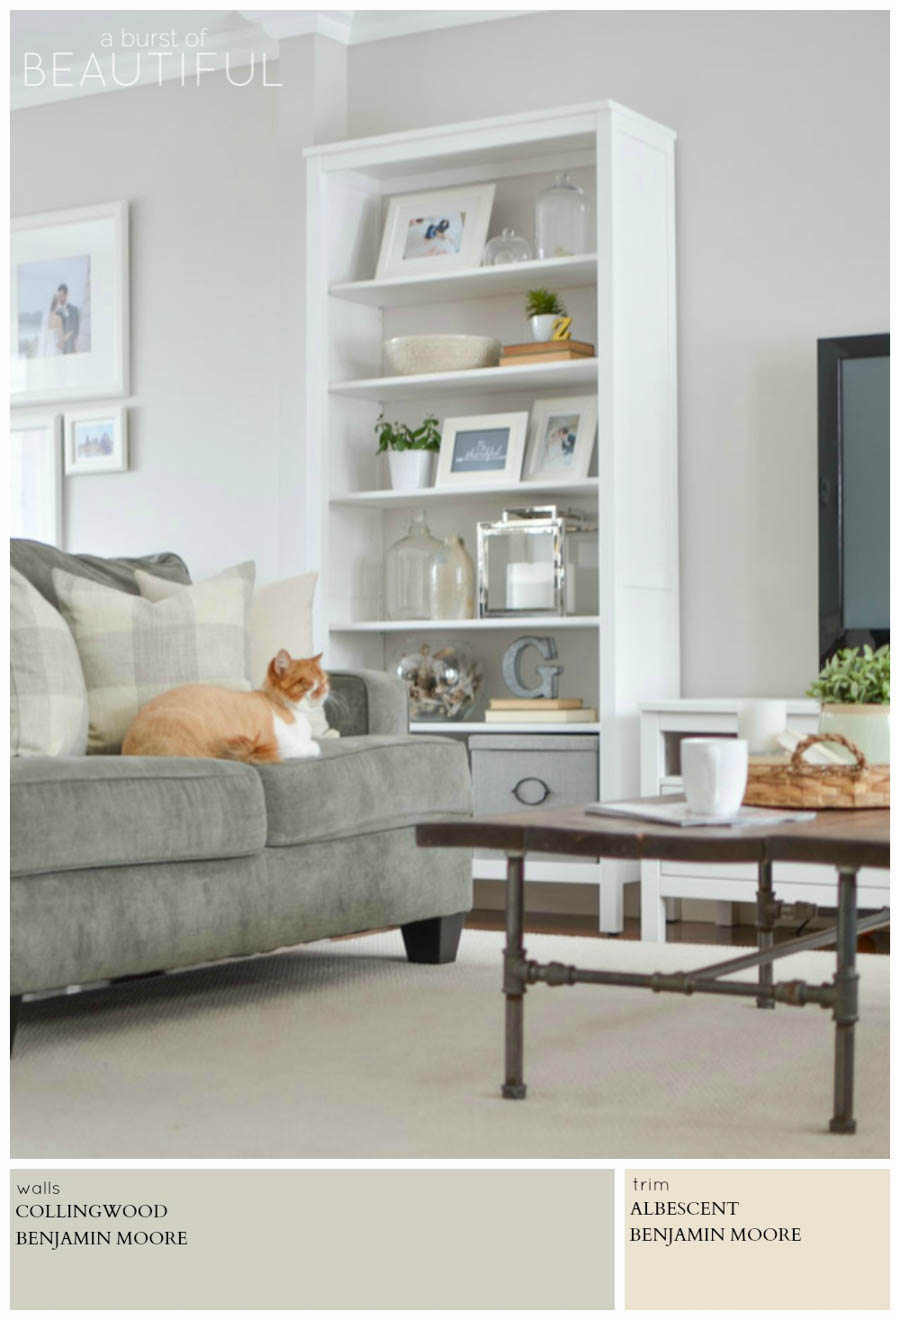 collingwood by benjamin moore is a classic and versatile color for any space a burst - Living Room Colors Paint